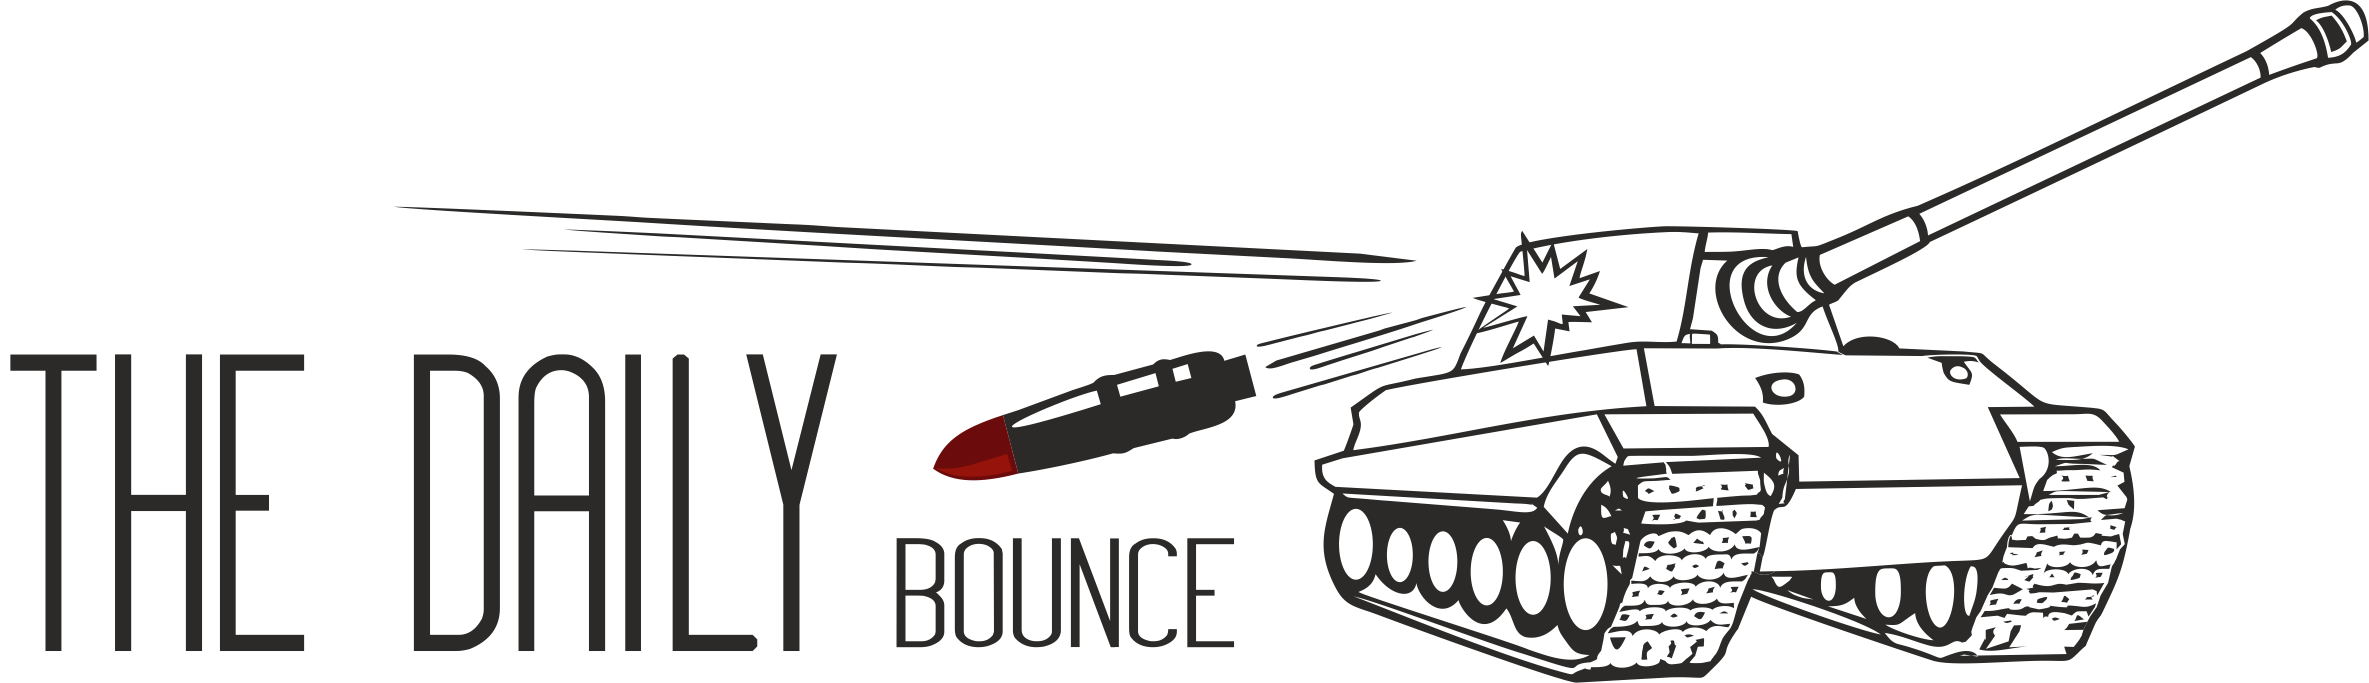 The Daily Bounce: World of Tanks, Warships and Warplanes News